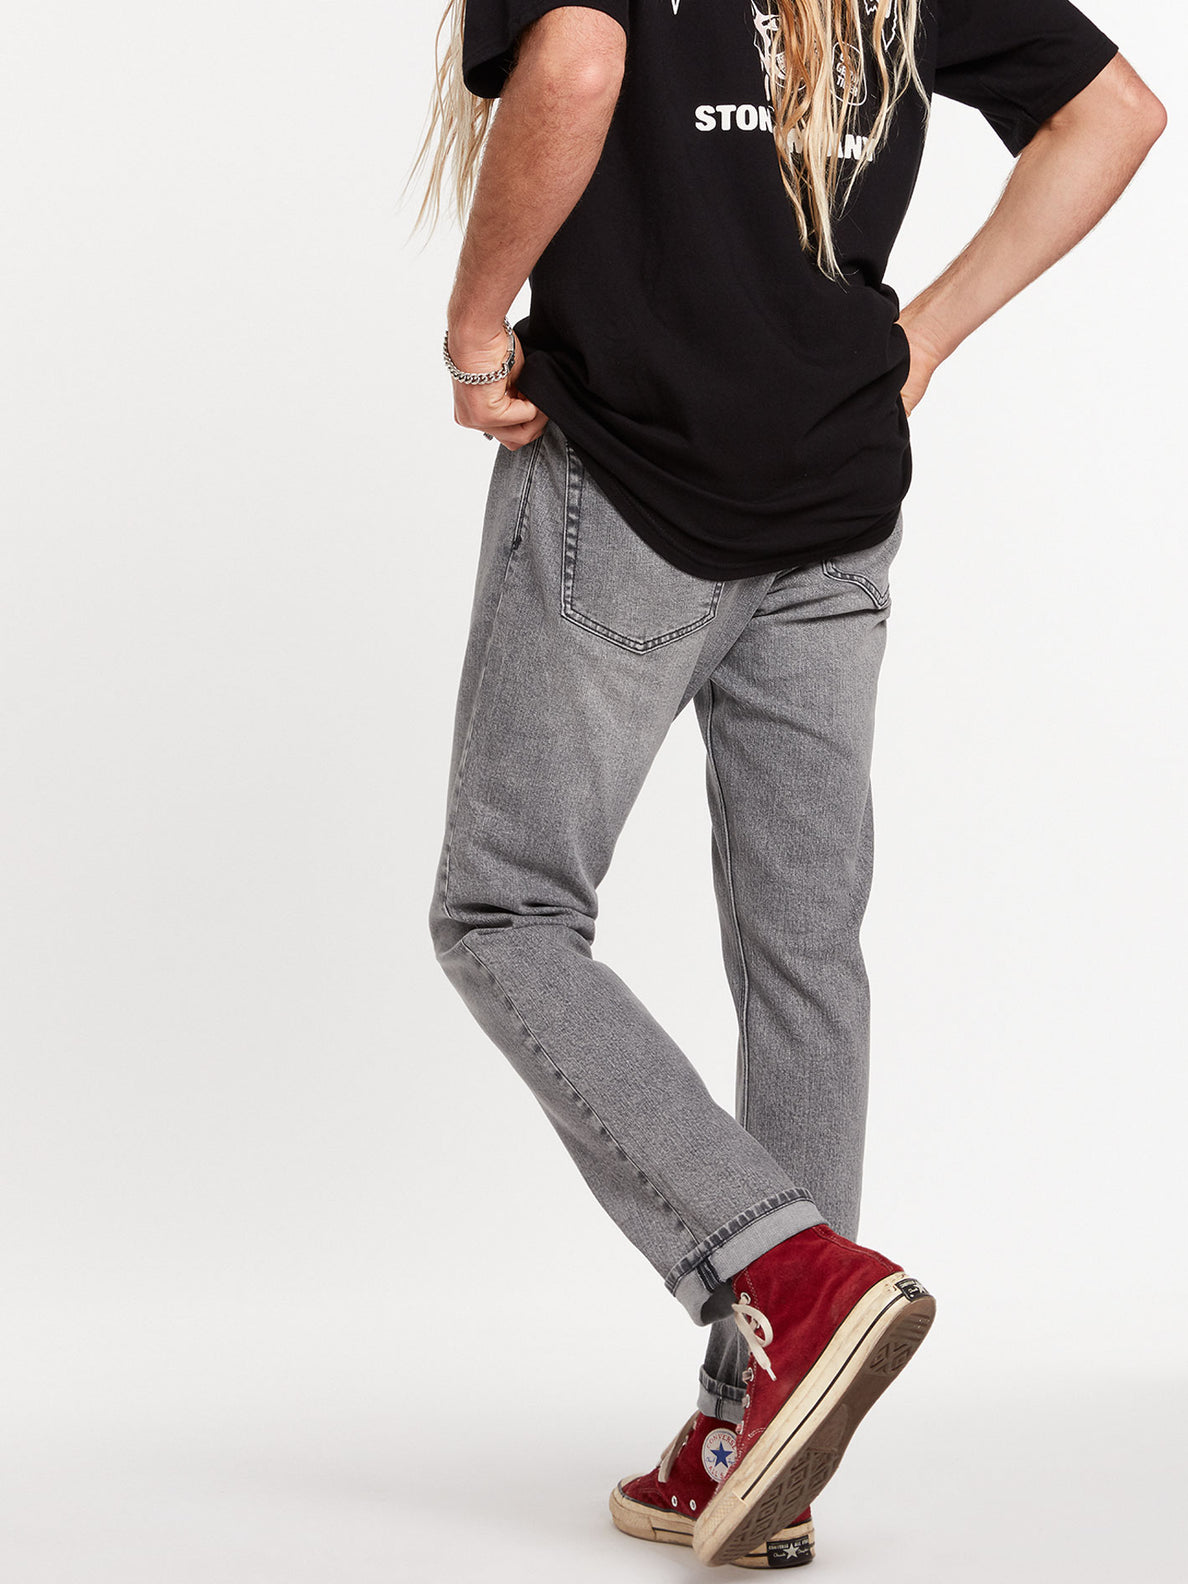 Vorta Slim Fit Jeans - Mono Grey (A1931501_MON) [37]